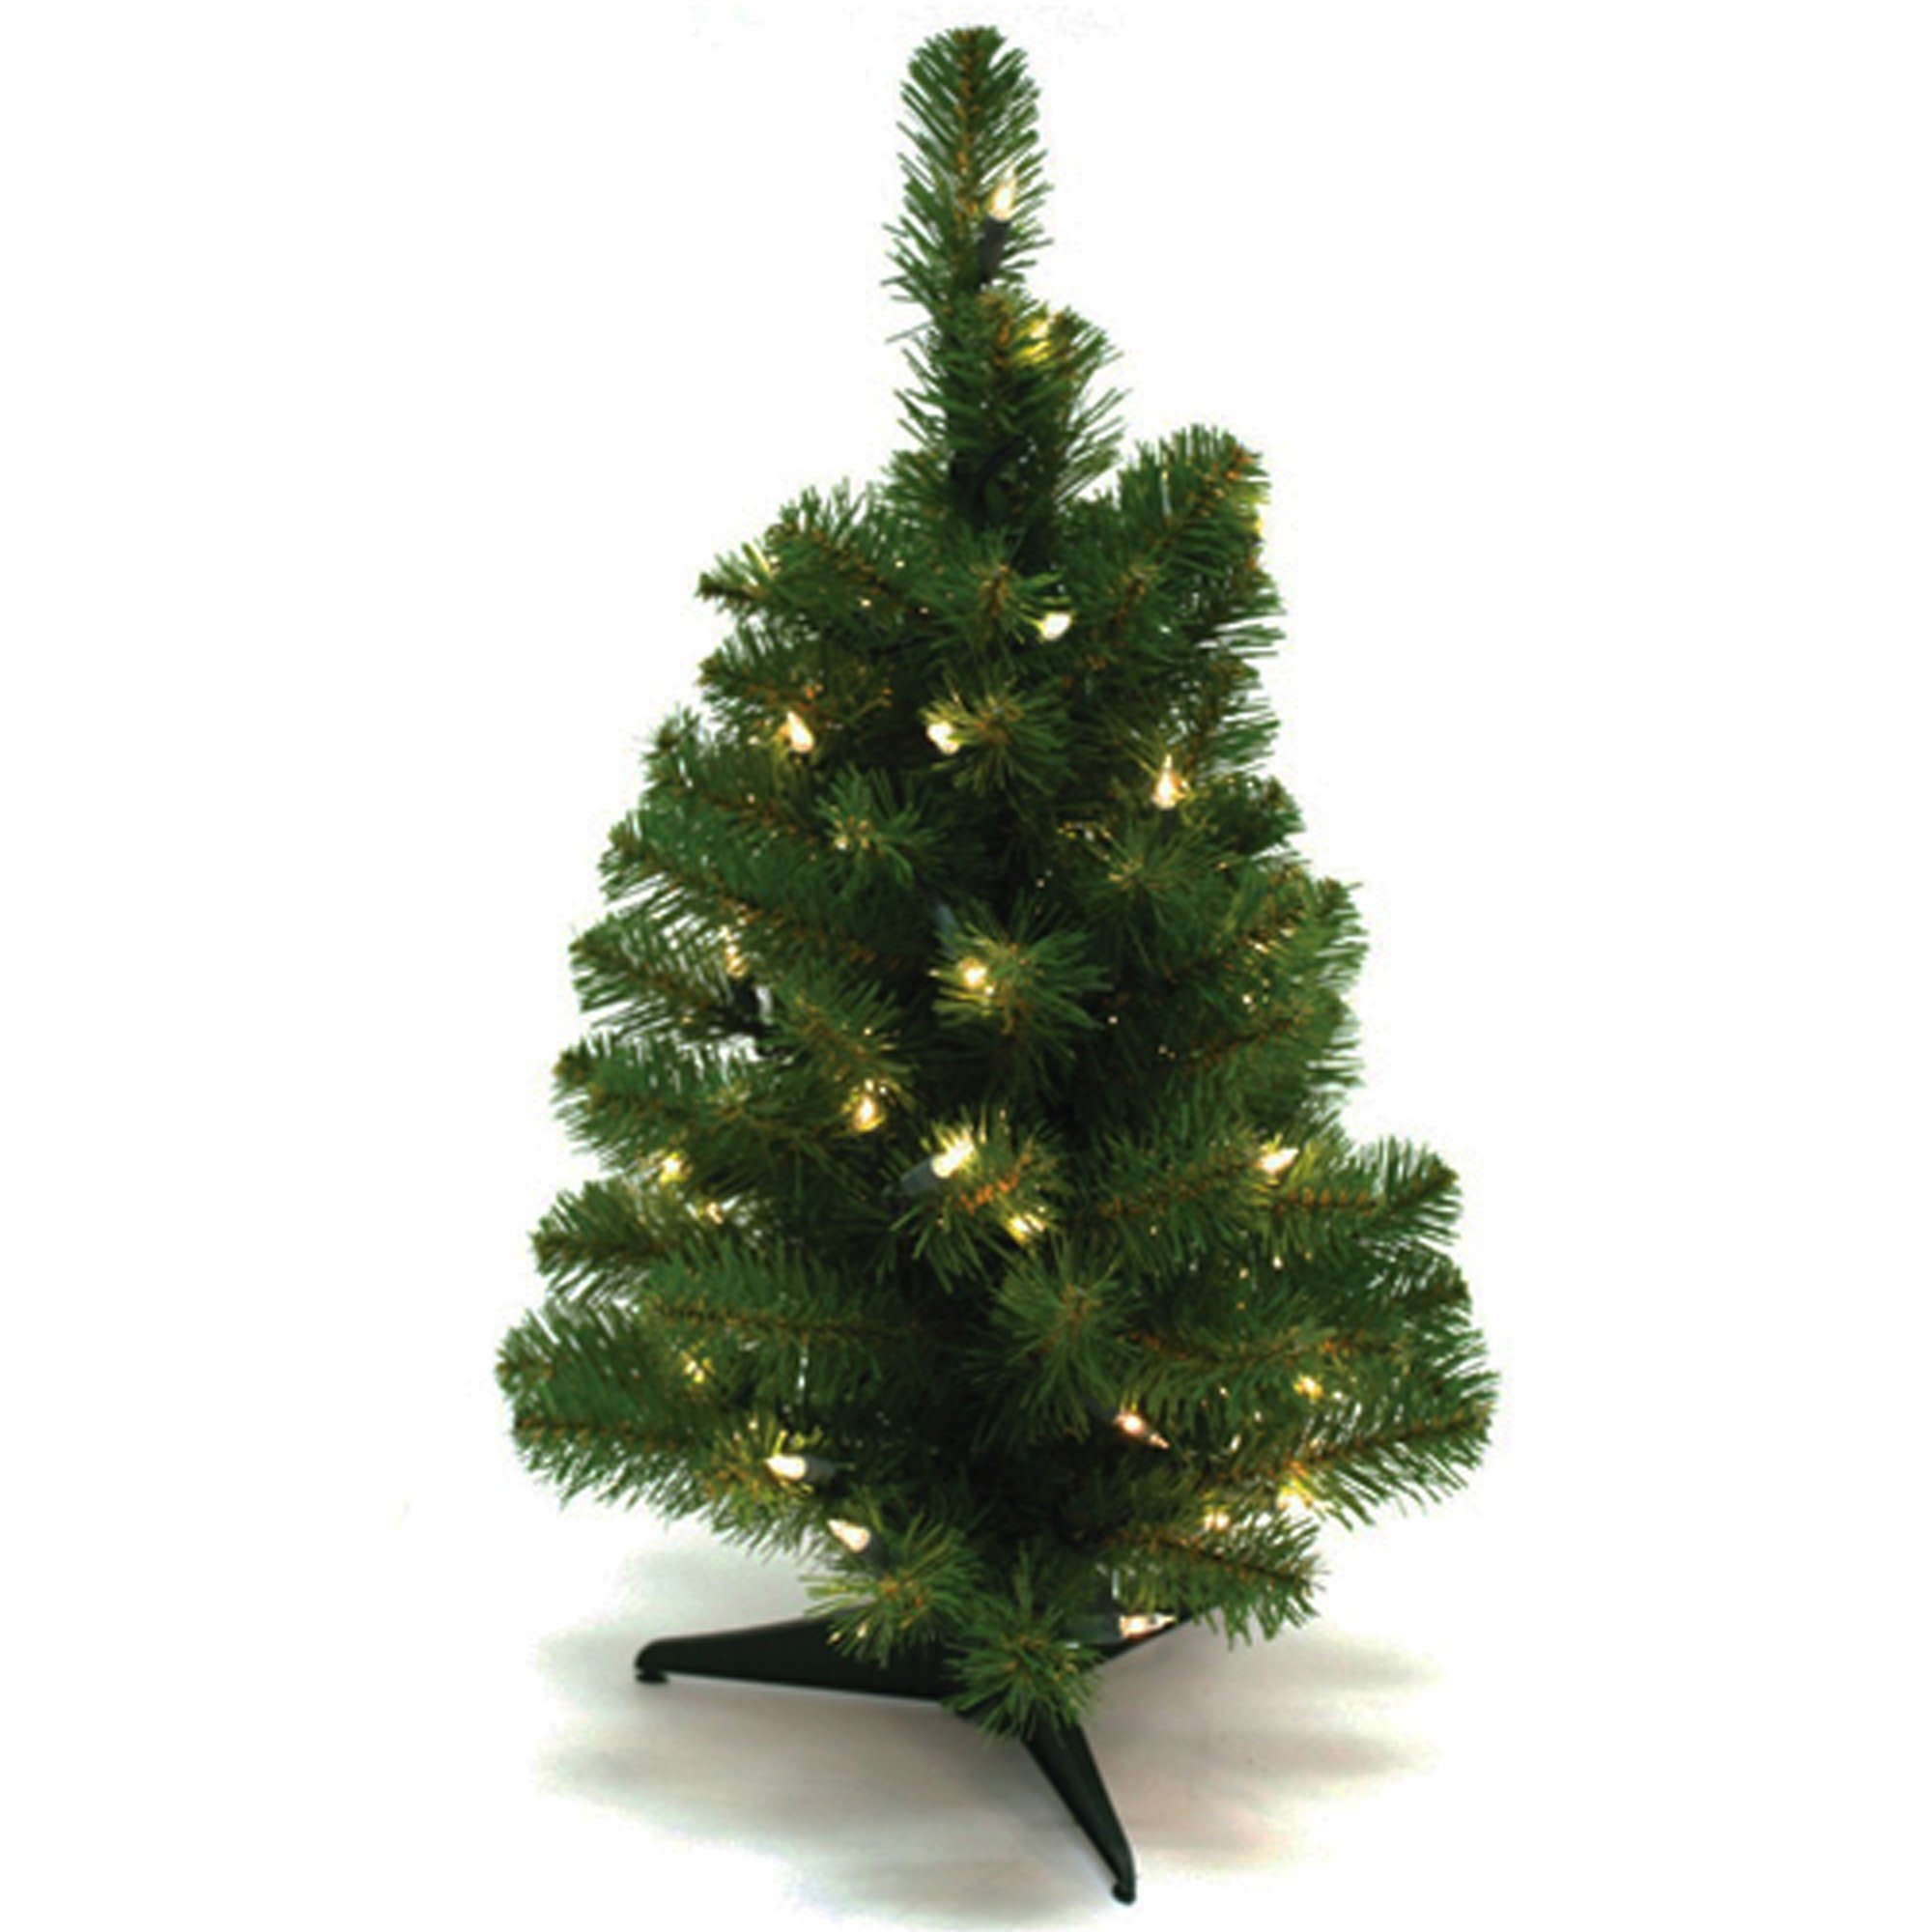 Wideskall® Tabletop Christmas Pine Tree 2 Feet Artificial with 30 LED Warm White Lights